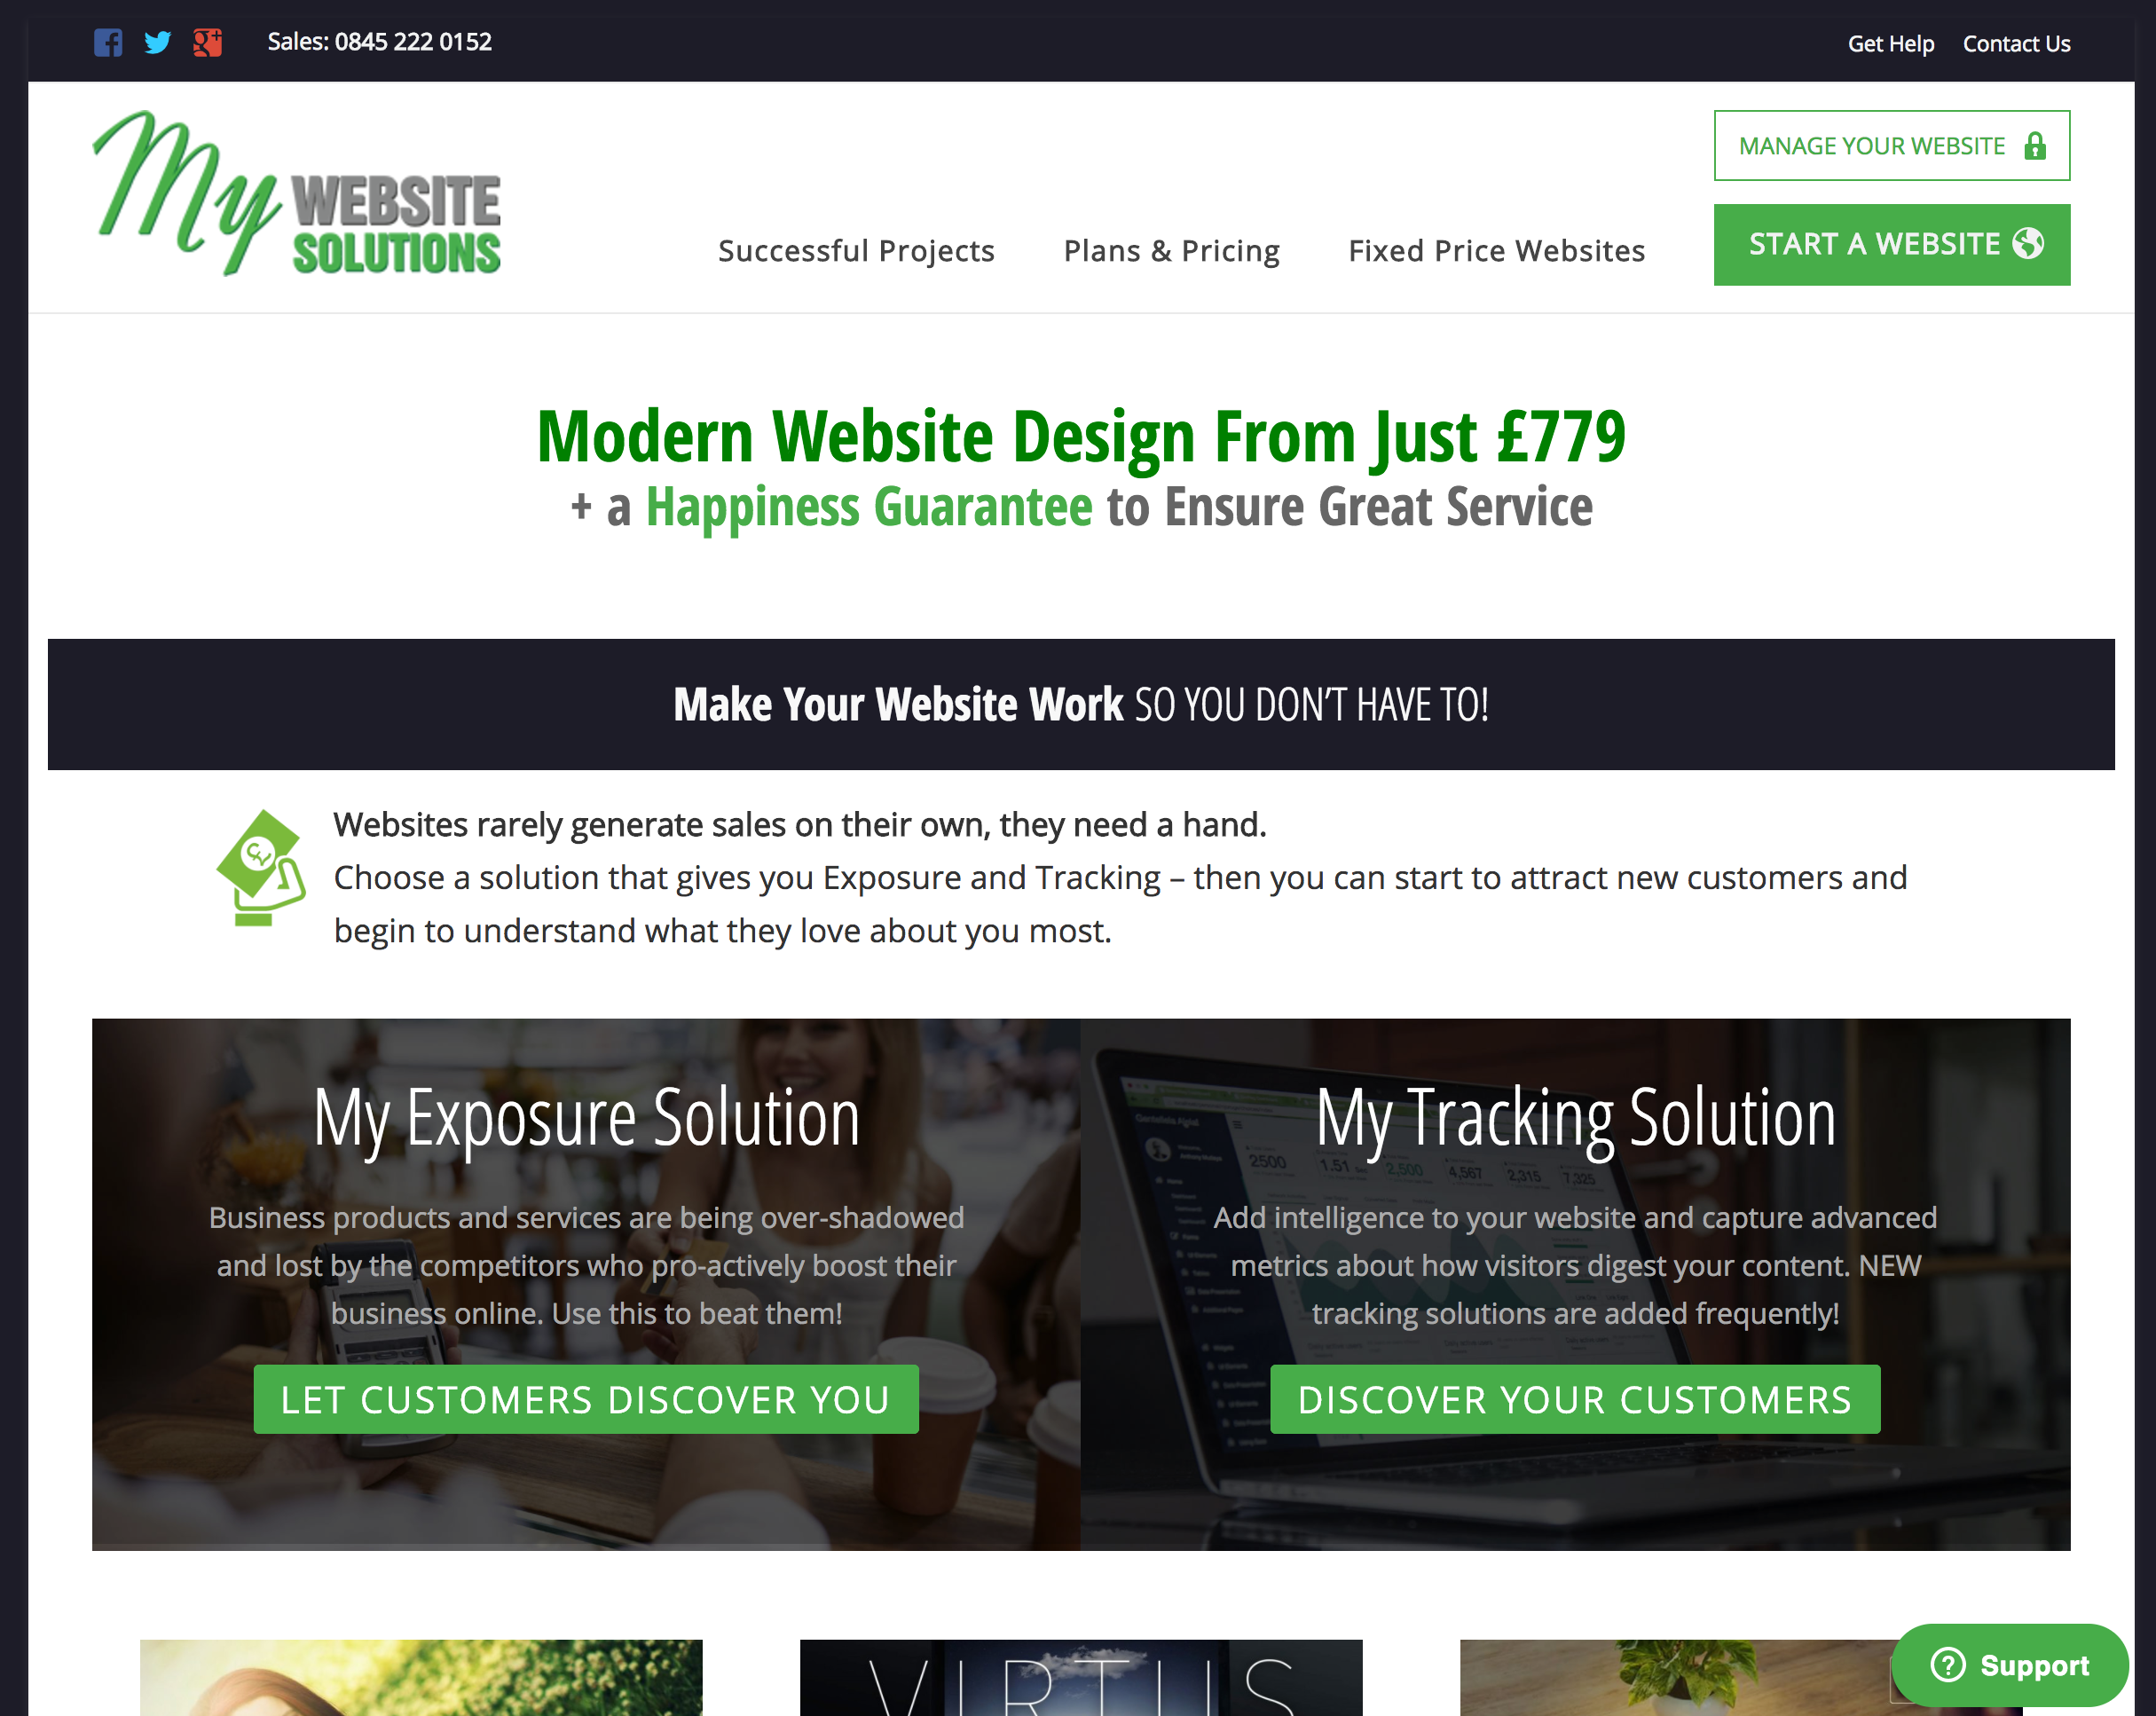 mywebsite.solutions